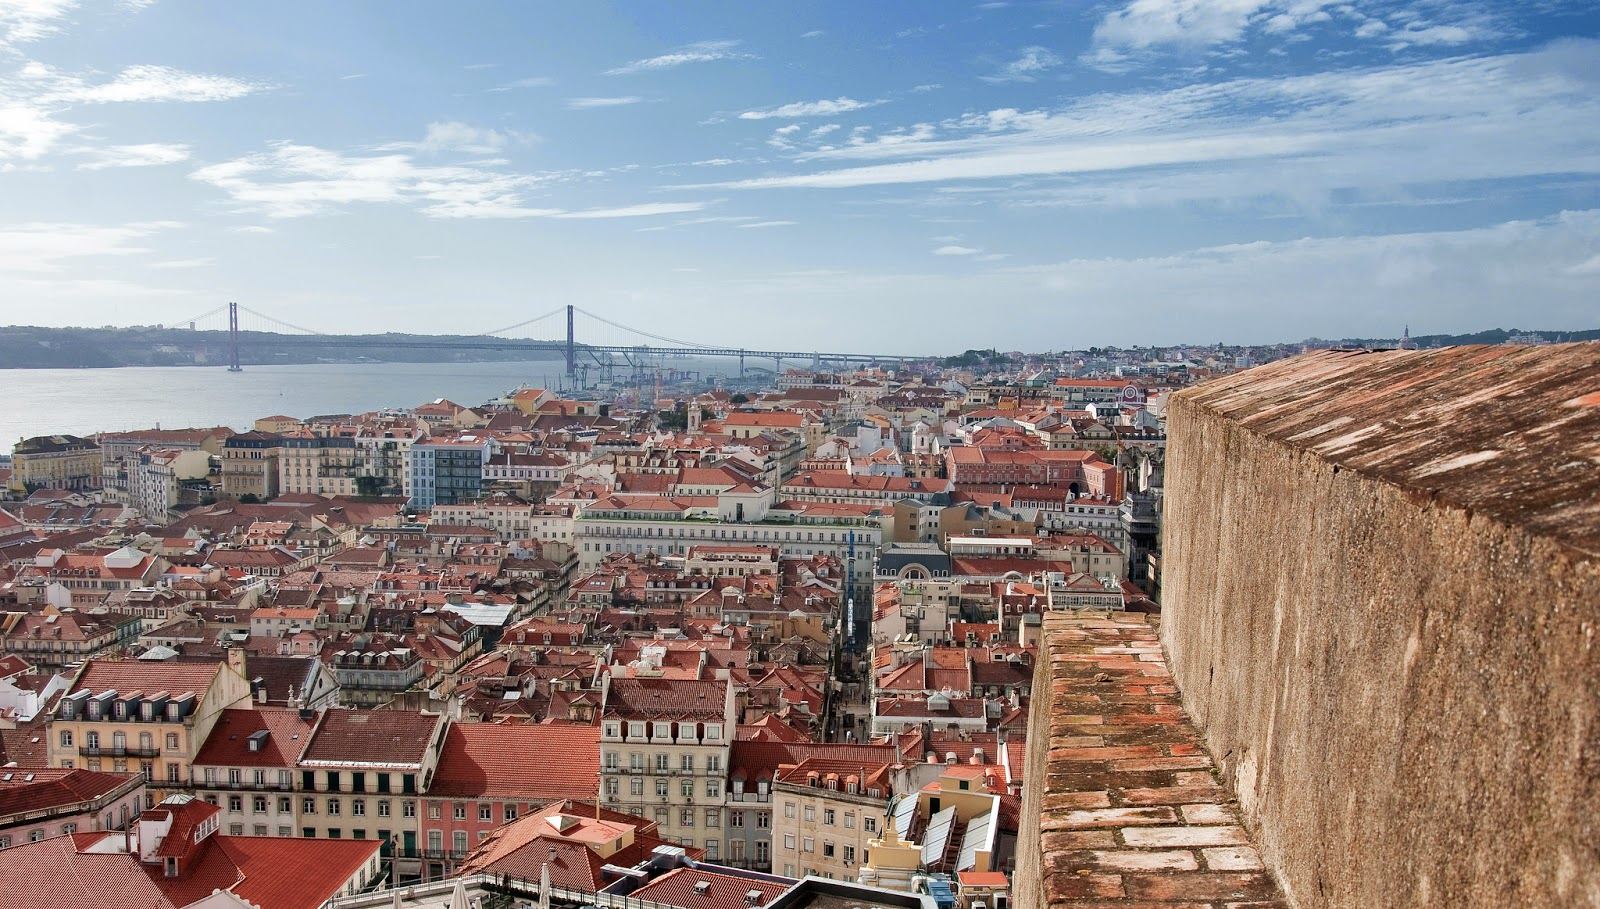 Lisbon the capital & largest city of Portugal